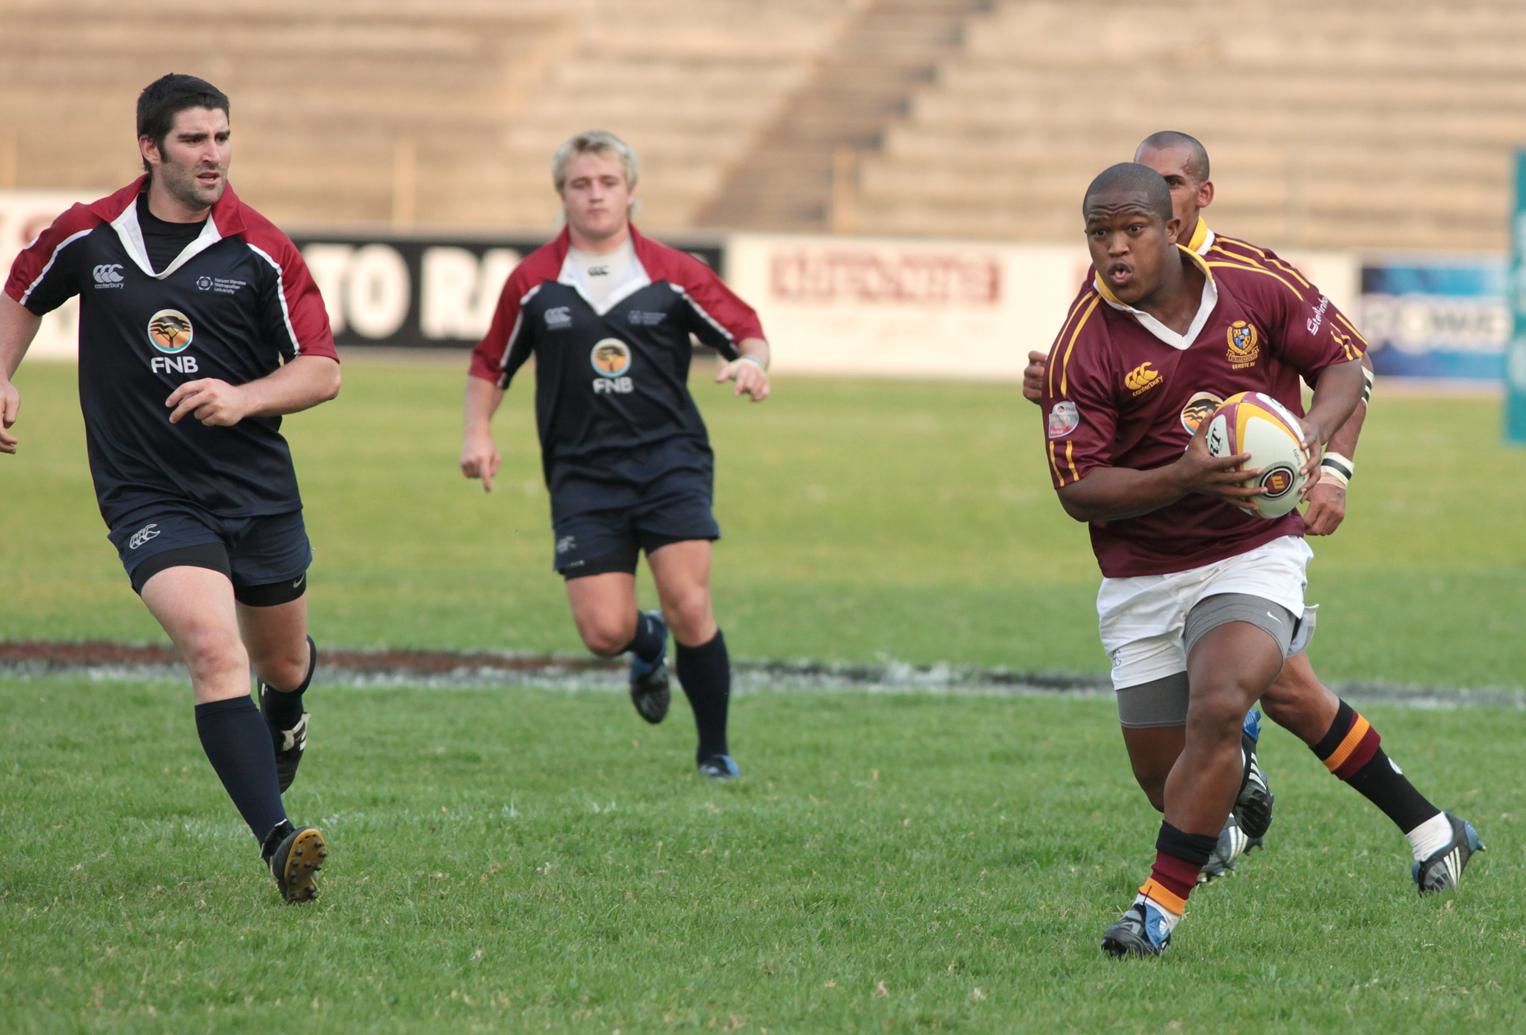 Maties vs NMMU_5.jpg